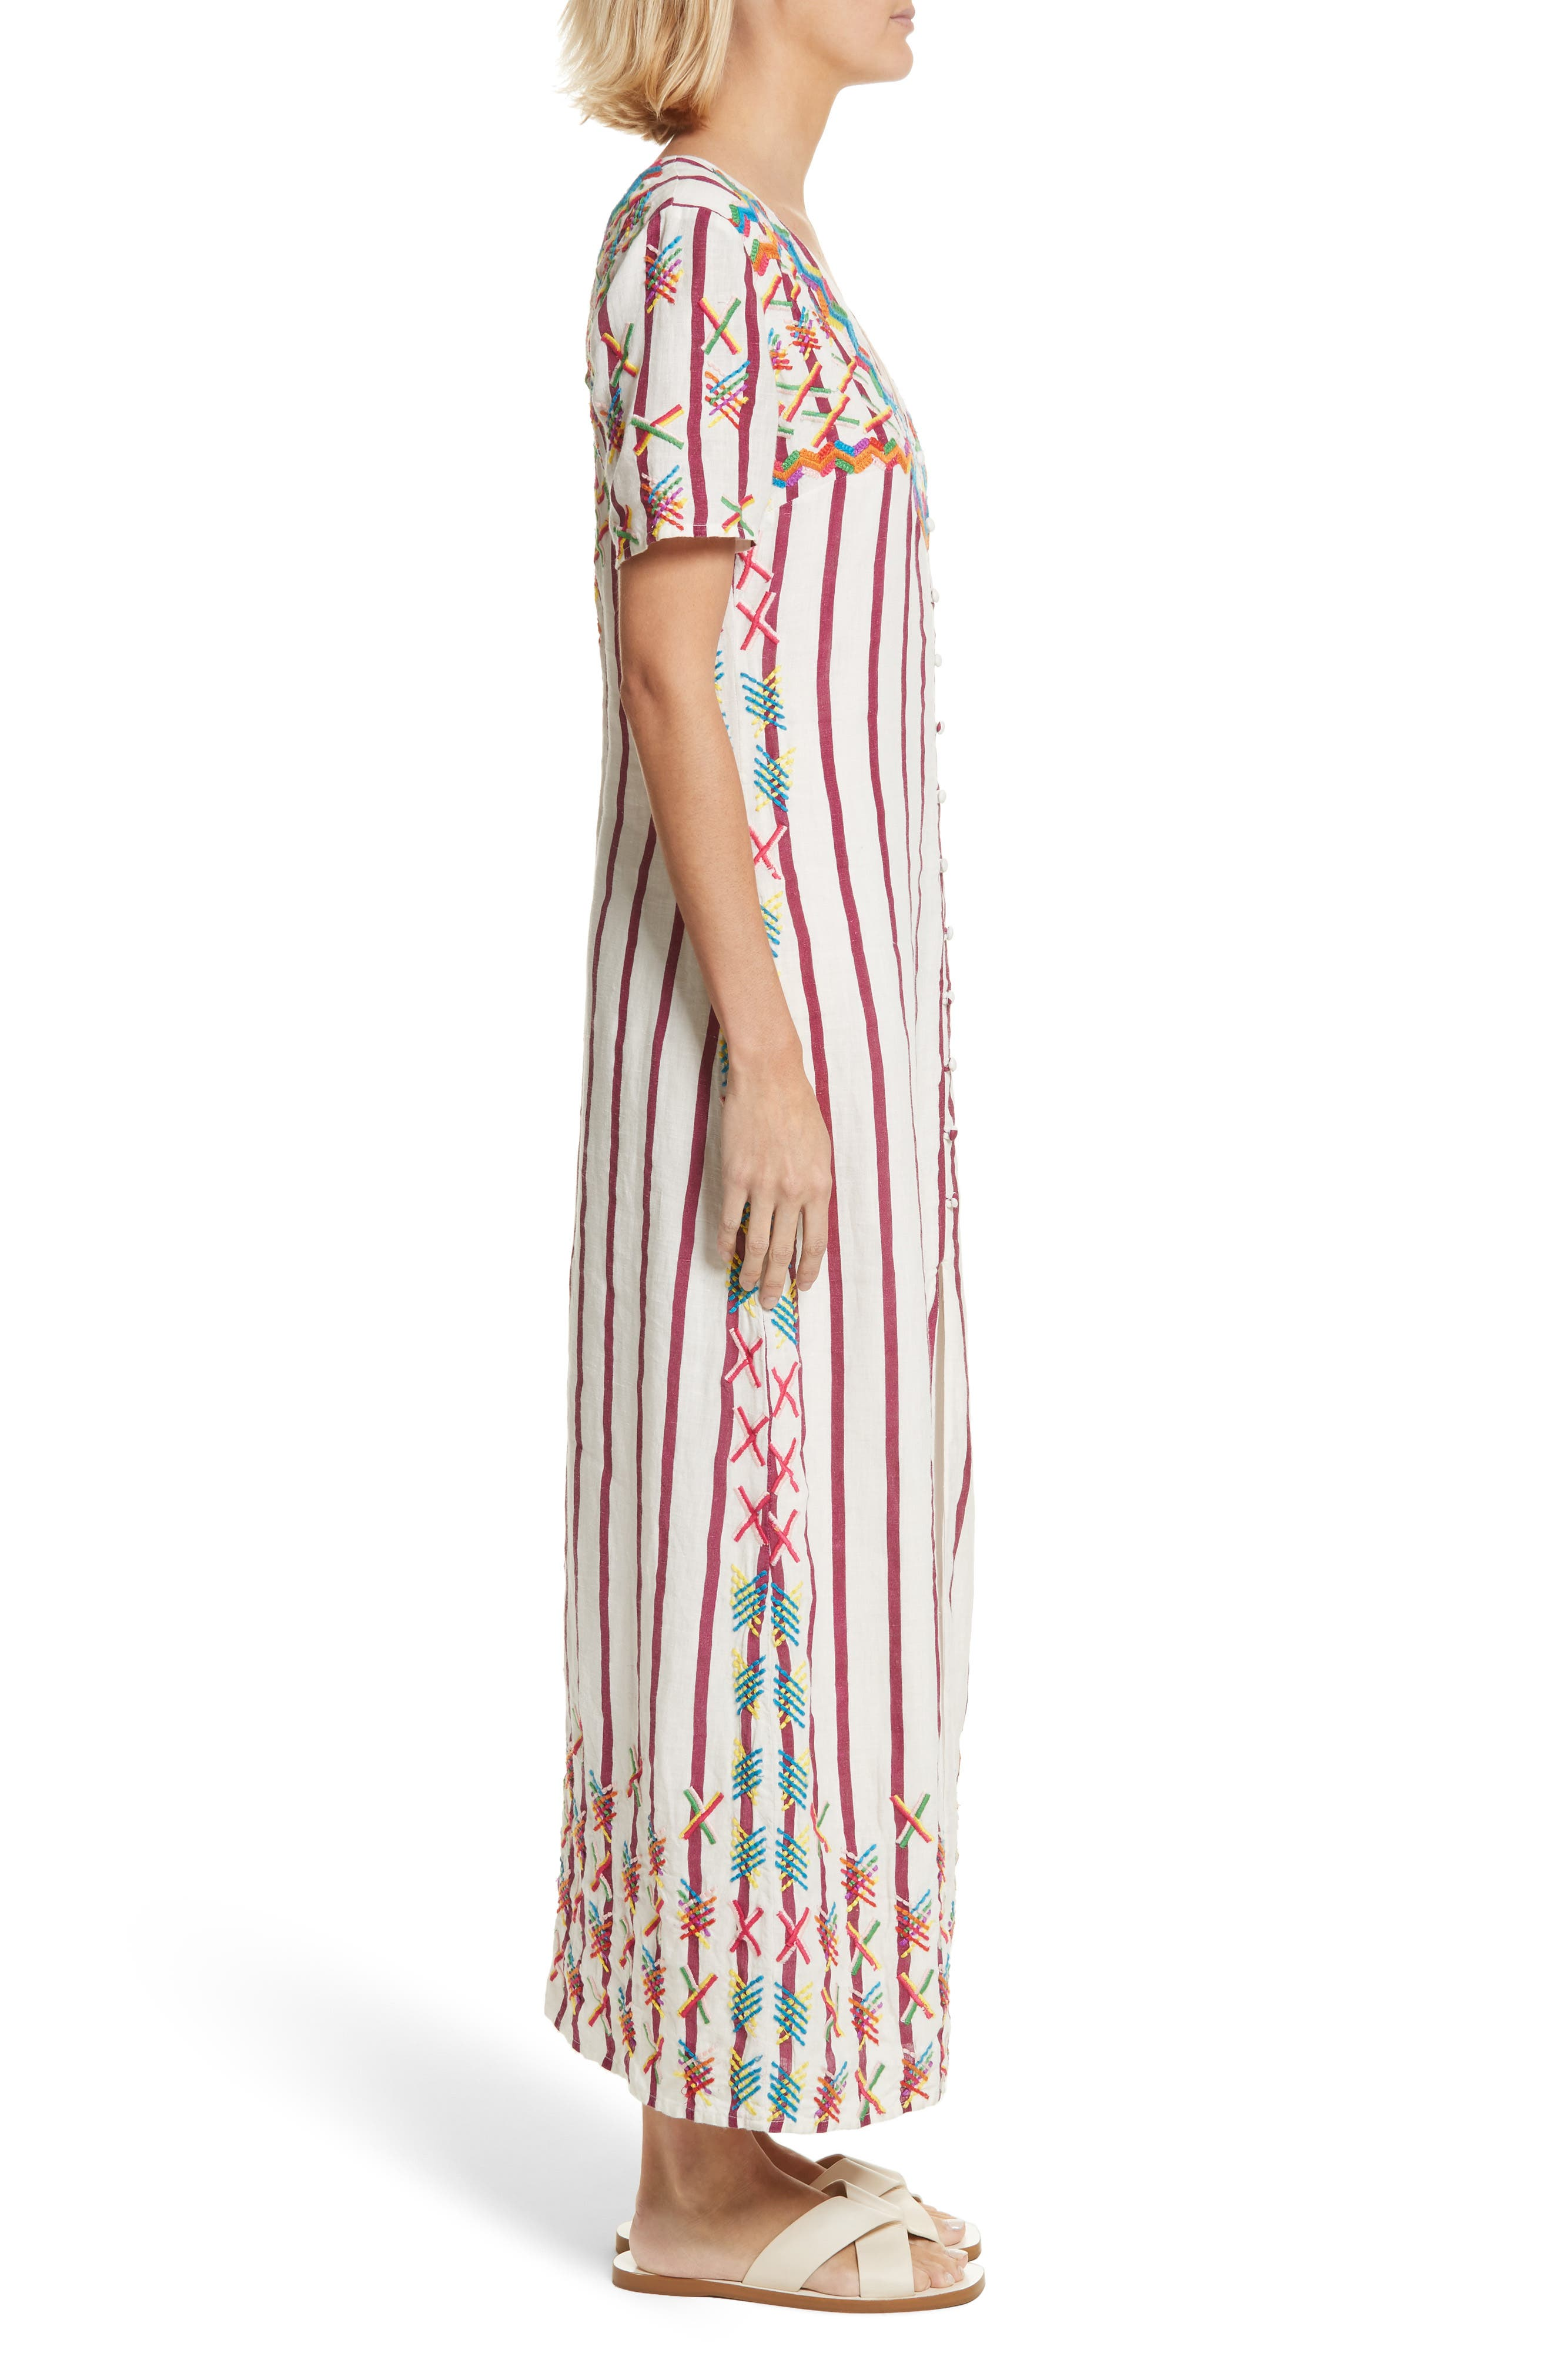 Maria Embroidered Maxi Dress,                             Alternate thumbnail 3, color,                             930